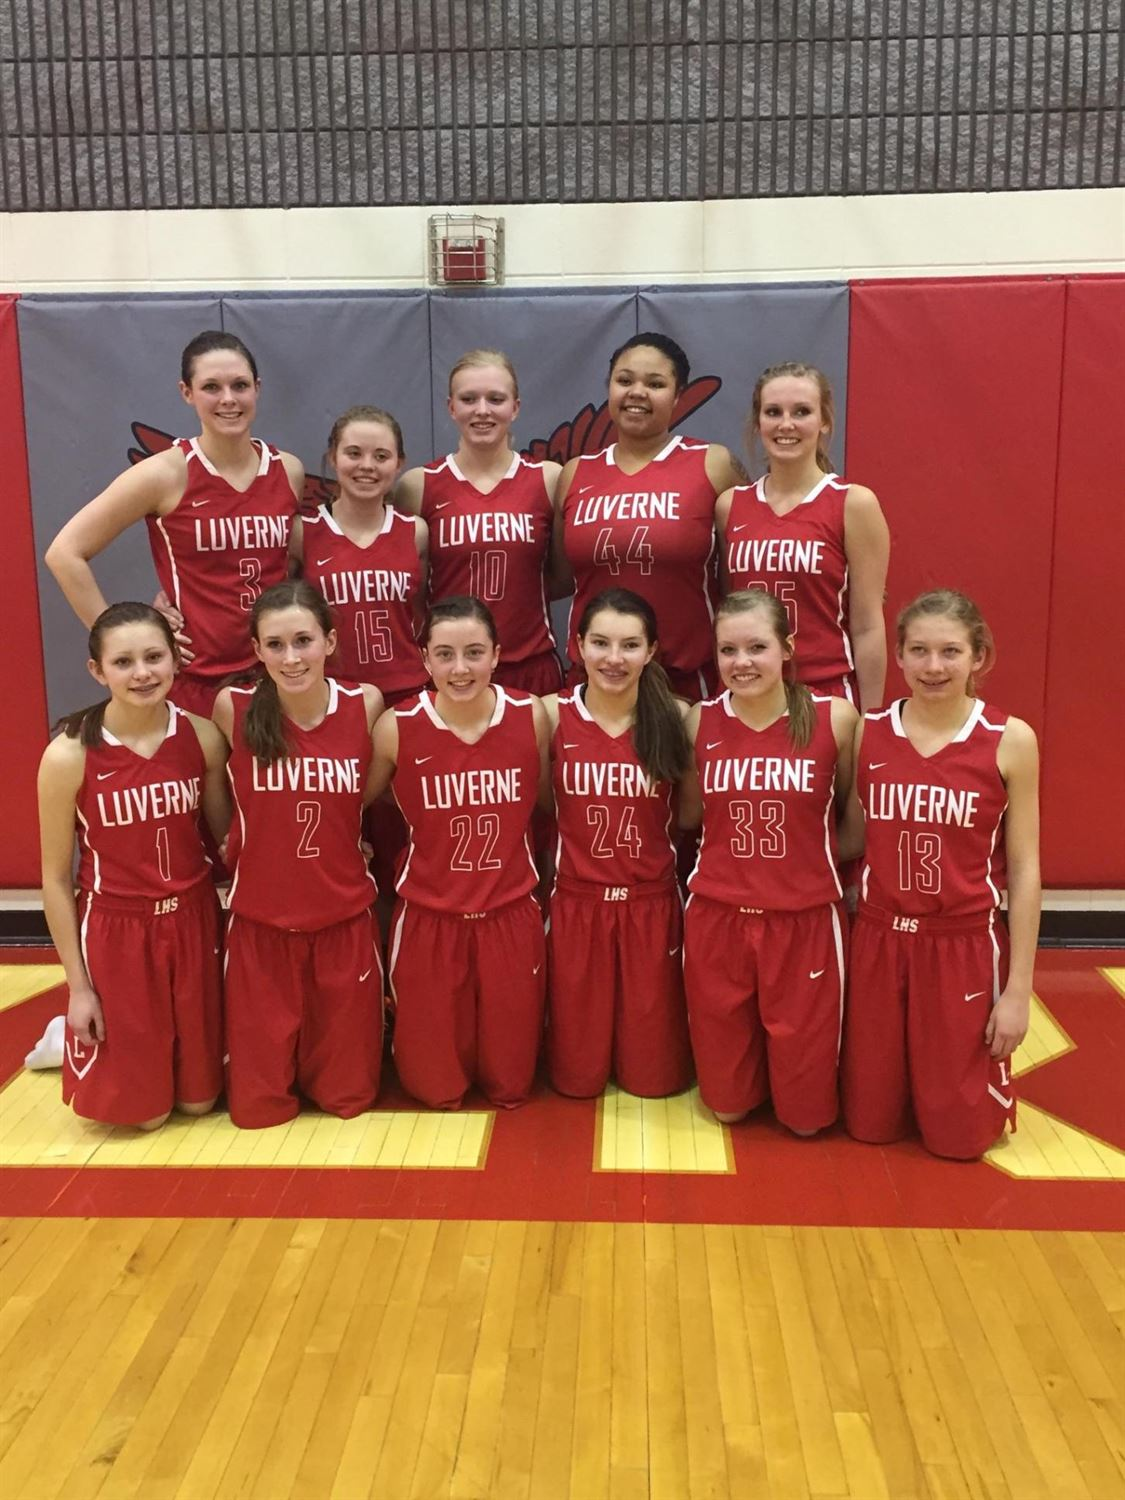 Luverne High School - Girls Varsity Basketball